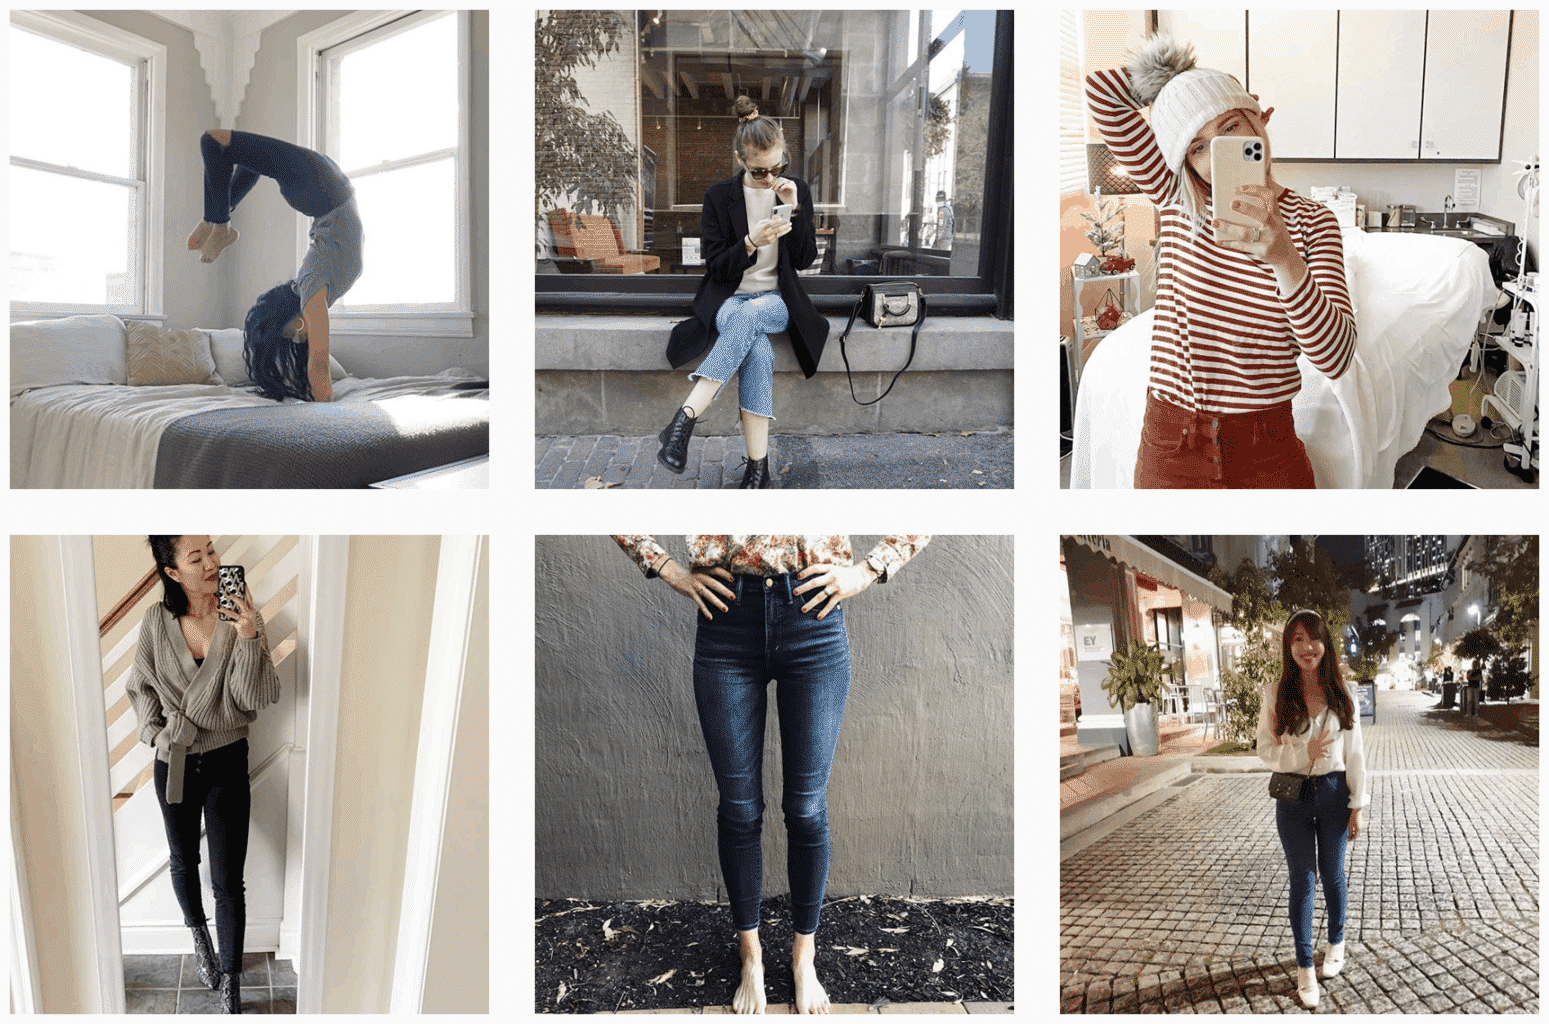 #denimmadewell UGC Revitalize and Scale Your Content Strategy with Influencer Content (IGC)